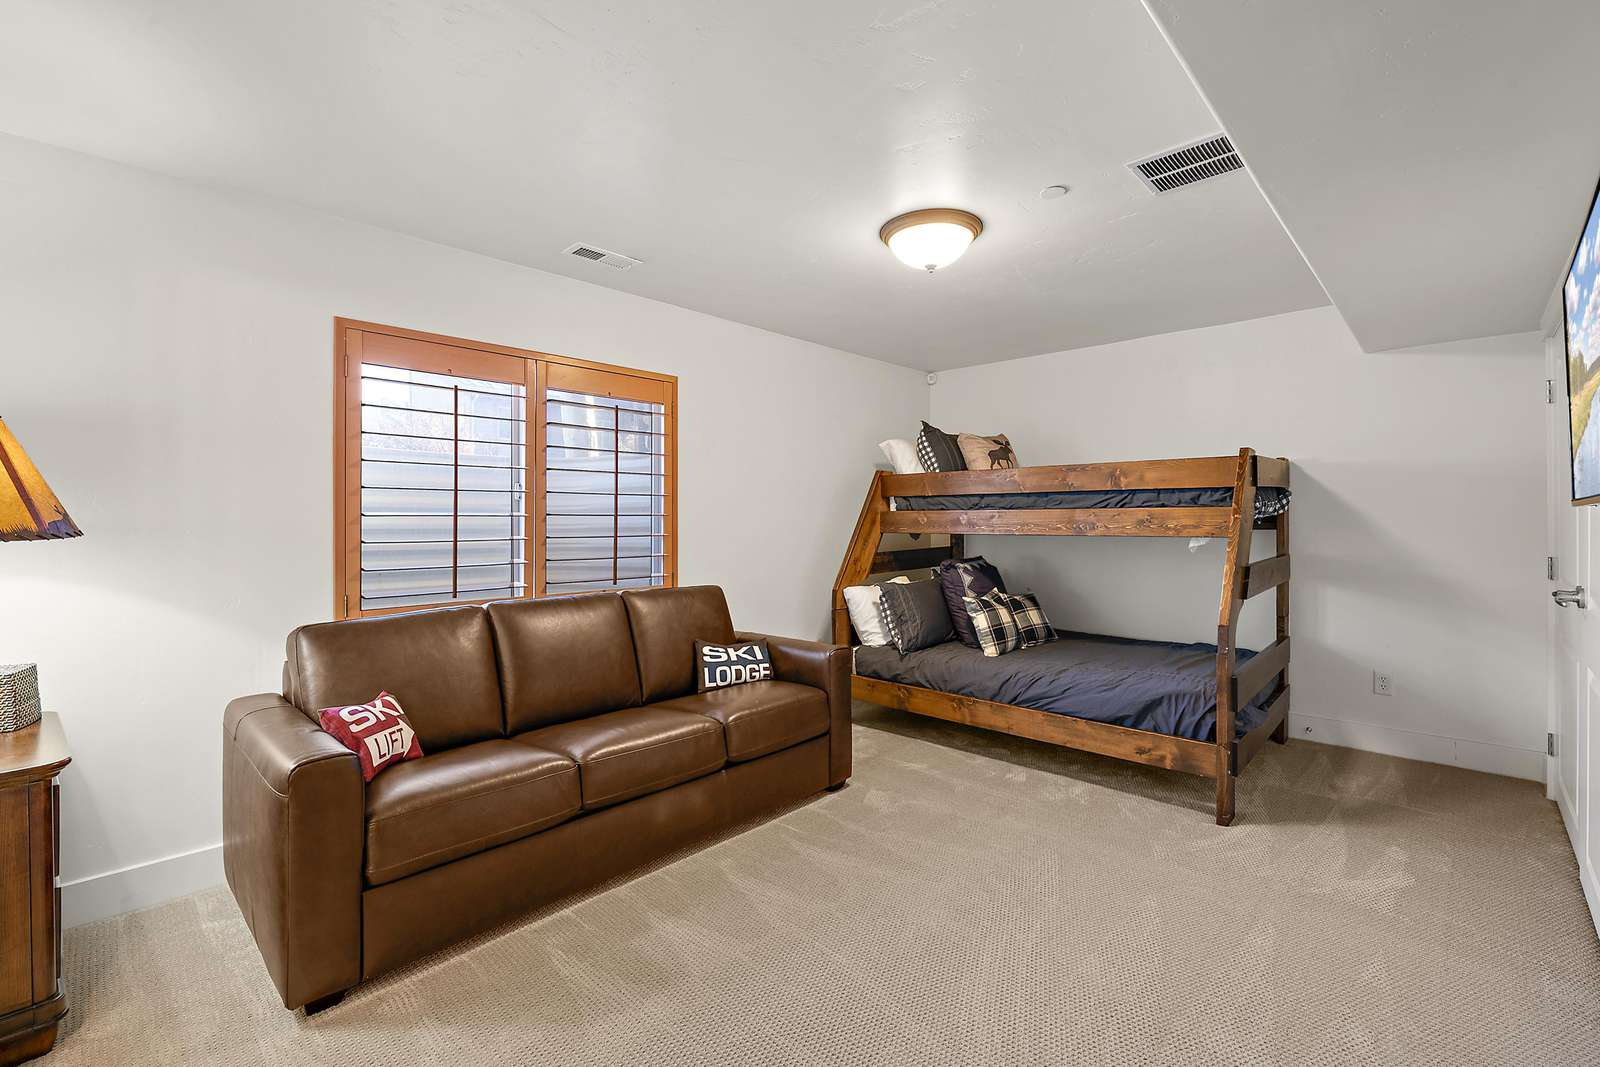 Bunk bed and sofa bed in downstairs living area